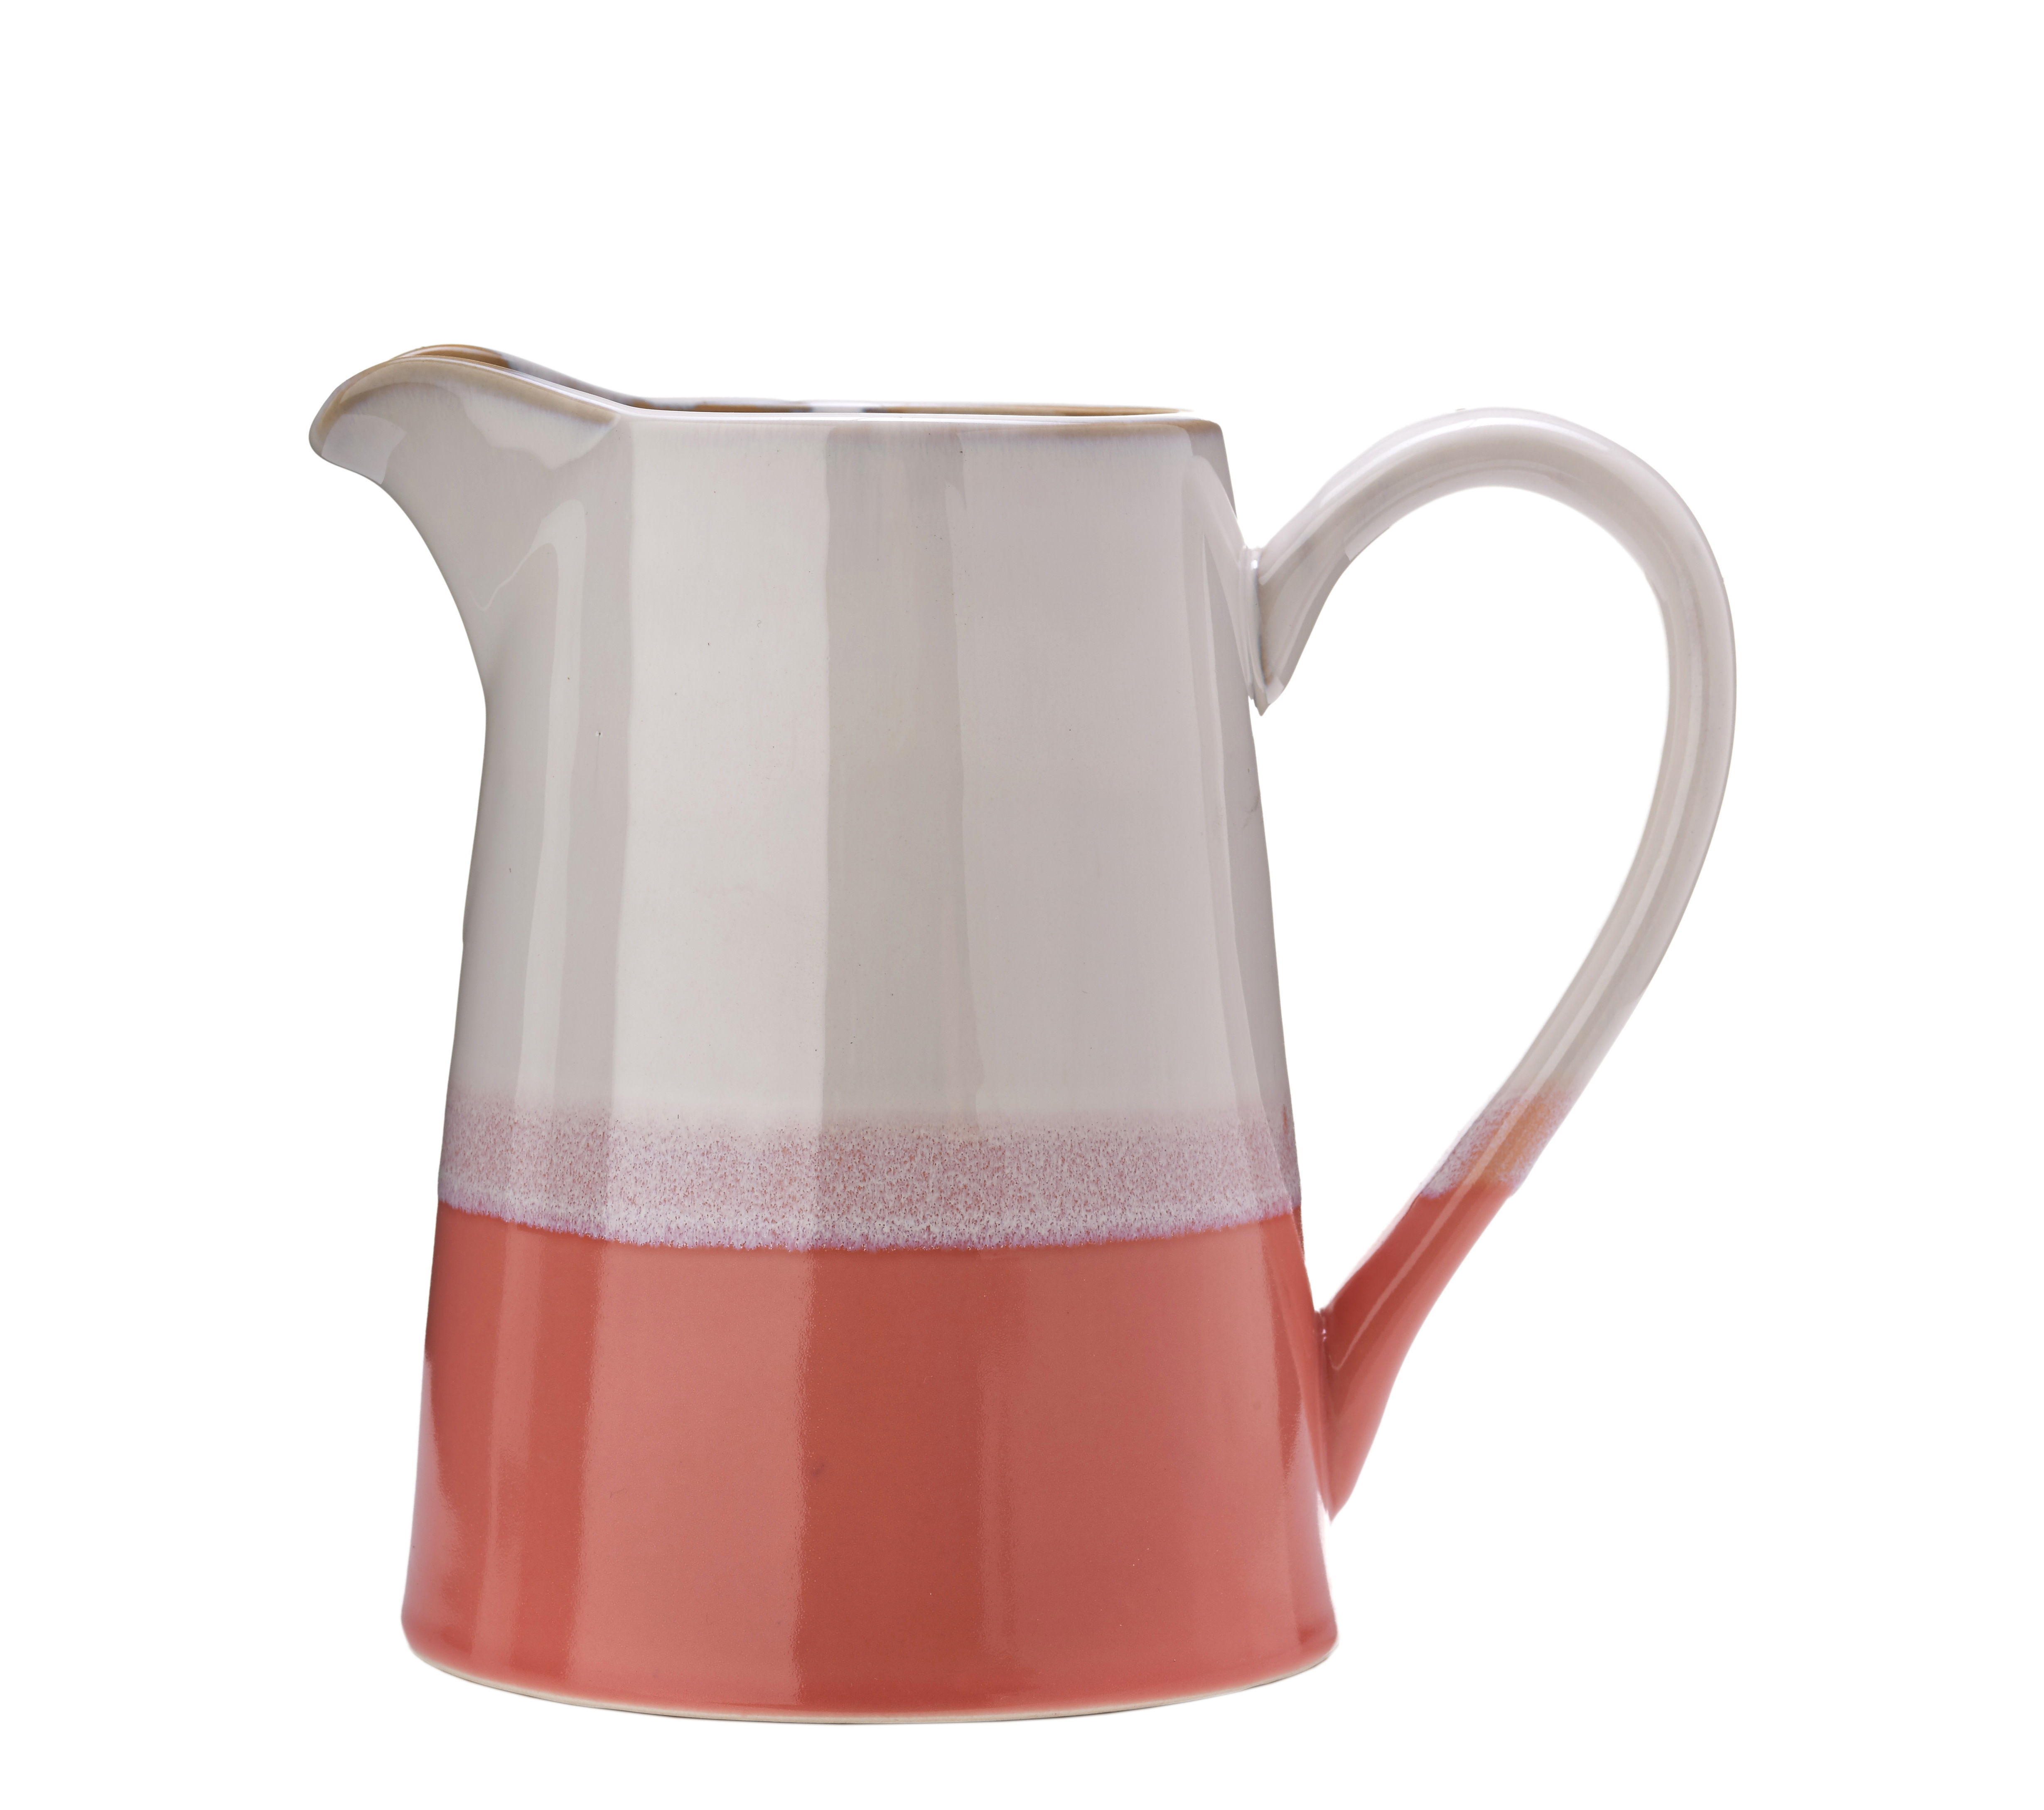 Tableware - Water Carafes & Wine Decanters - Panorama Carafe - / 1.5 L - Ceramic by Pols Potten - Pink & beige - Glazed ceramic